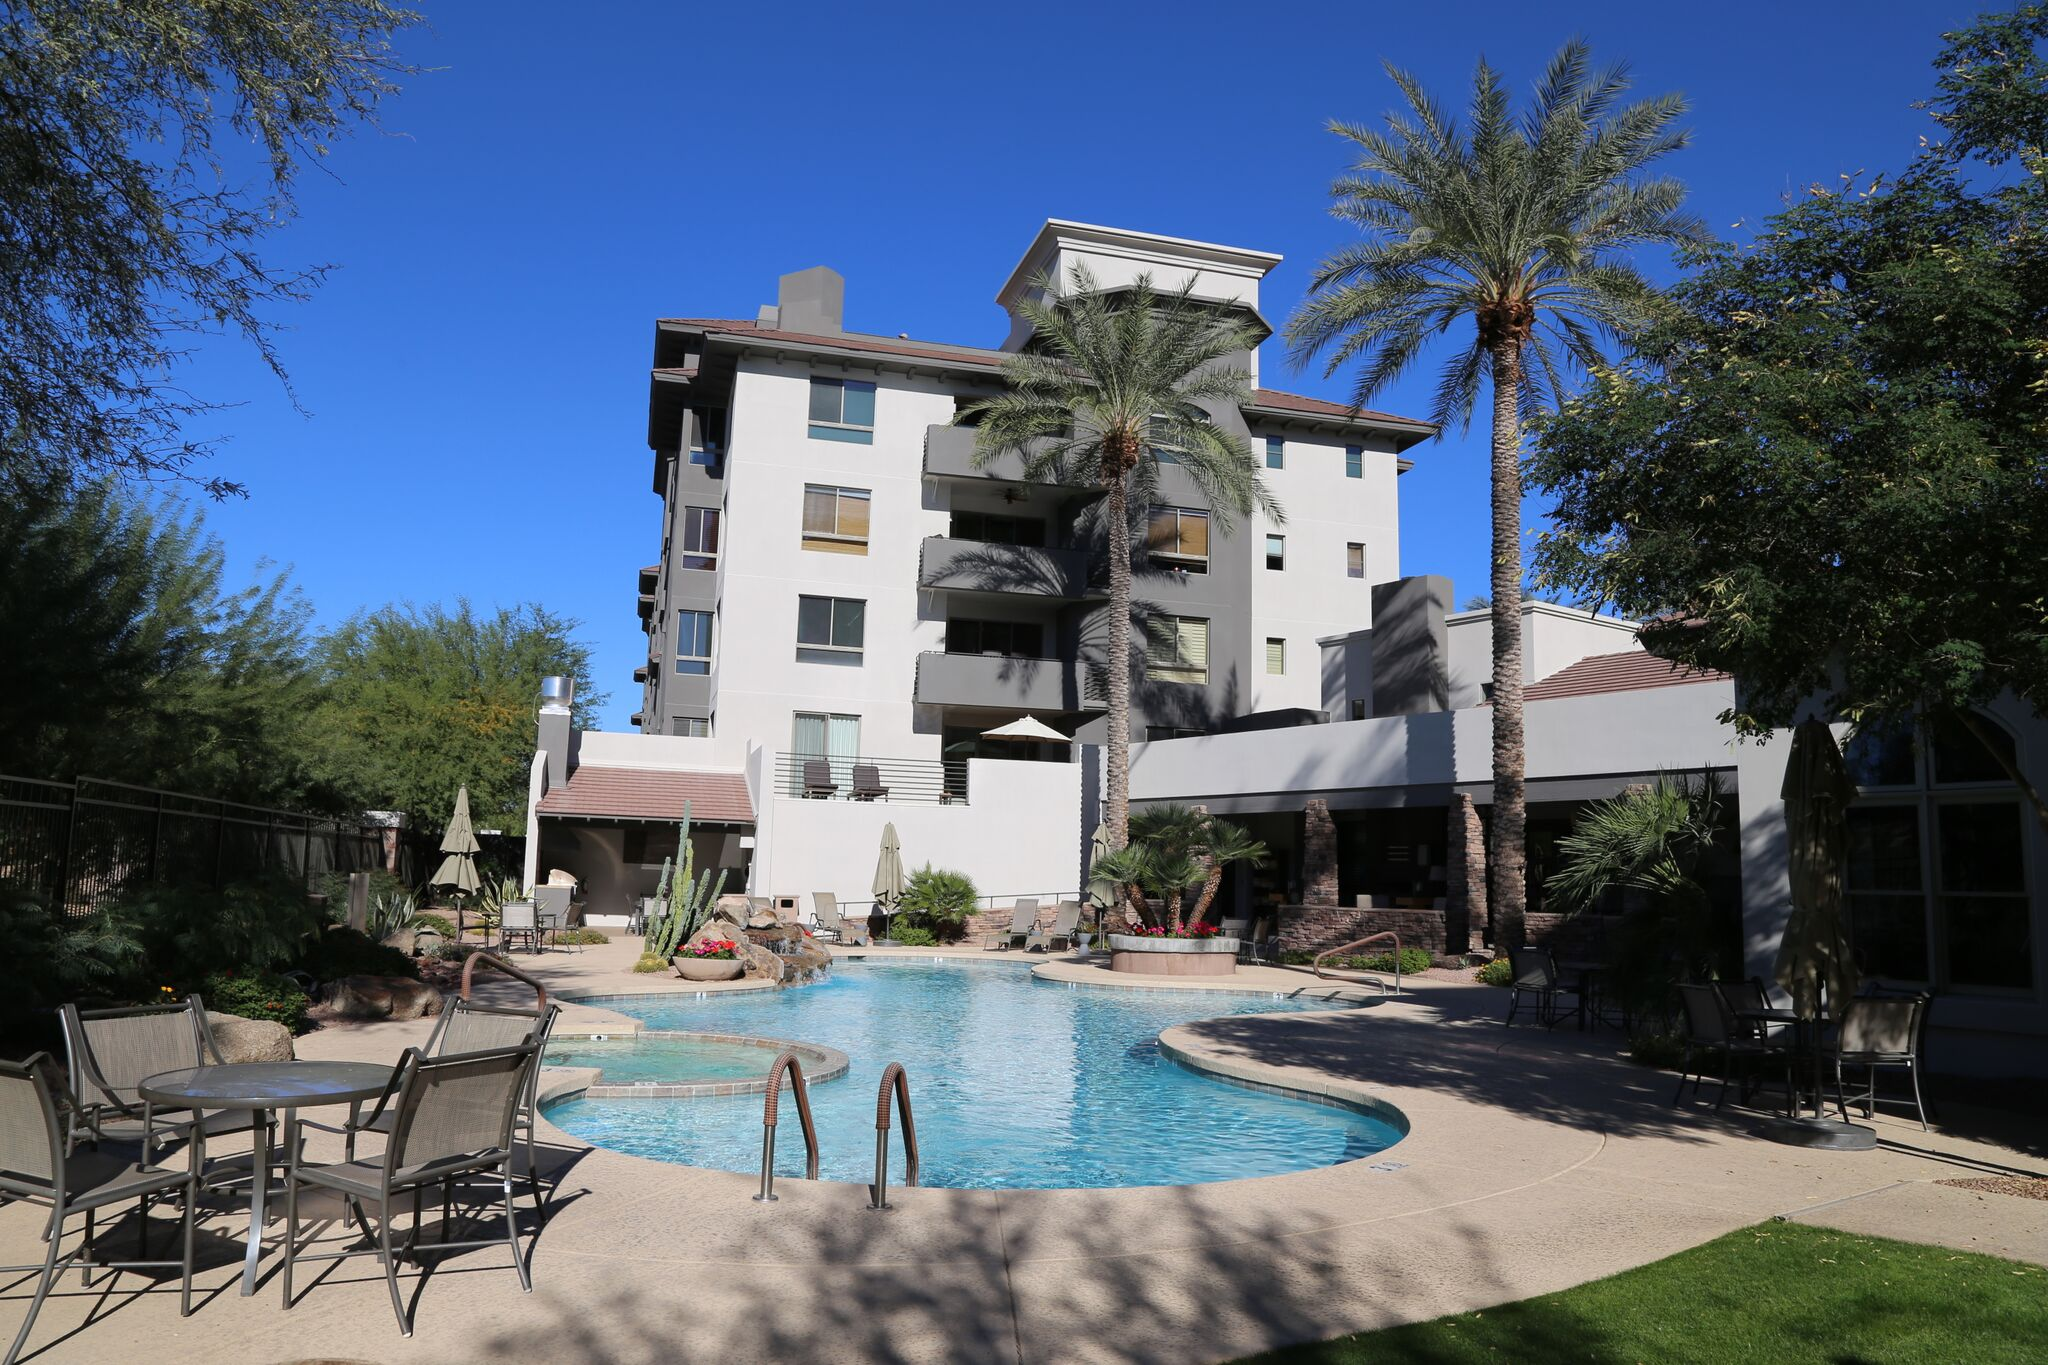 Scottsdale's Landmark Condominium pool and veranda.